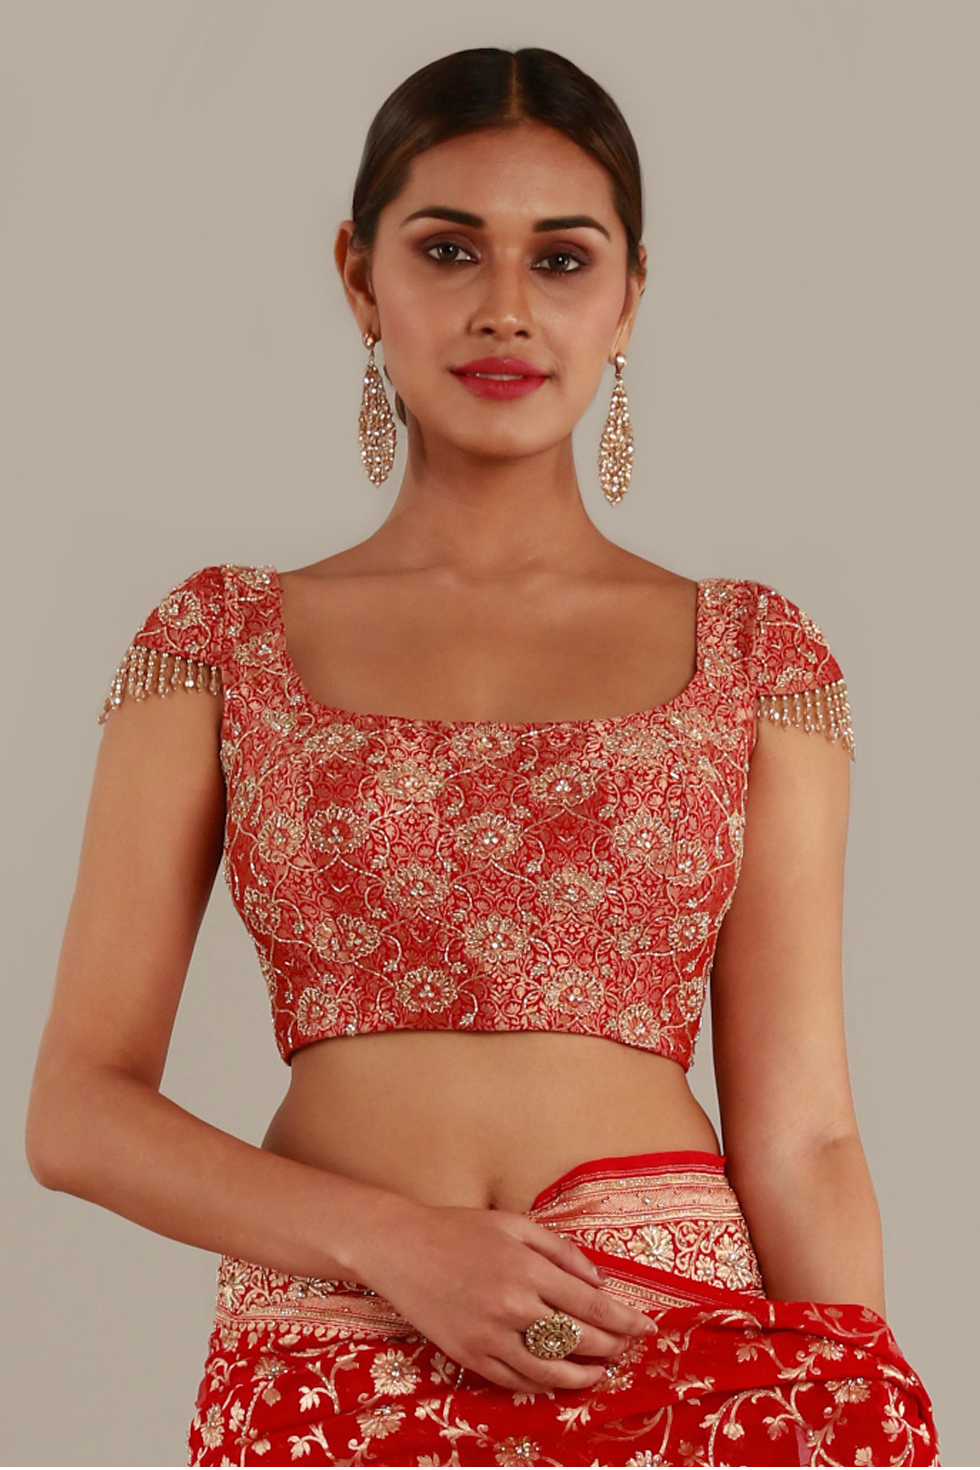 Fiery red choli with gold highlights and tassels